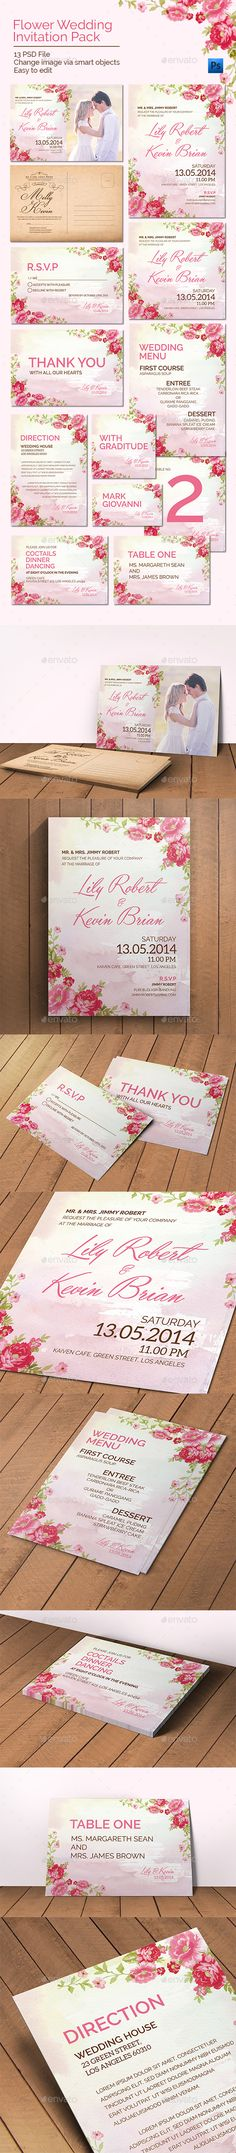 wedding invitation design psd%0A first wedding anniversary quotes for daughter and son in law